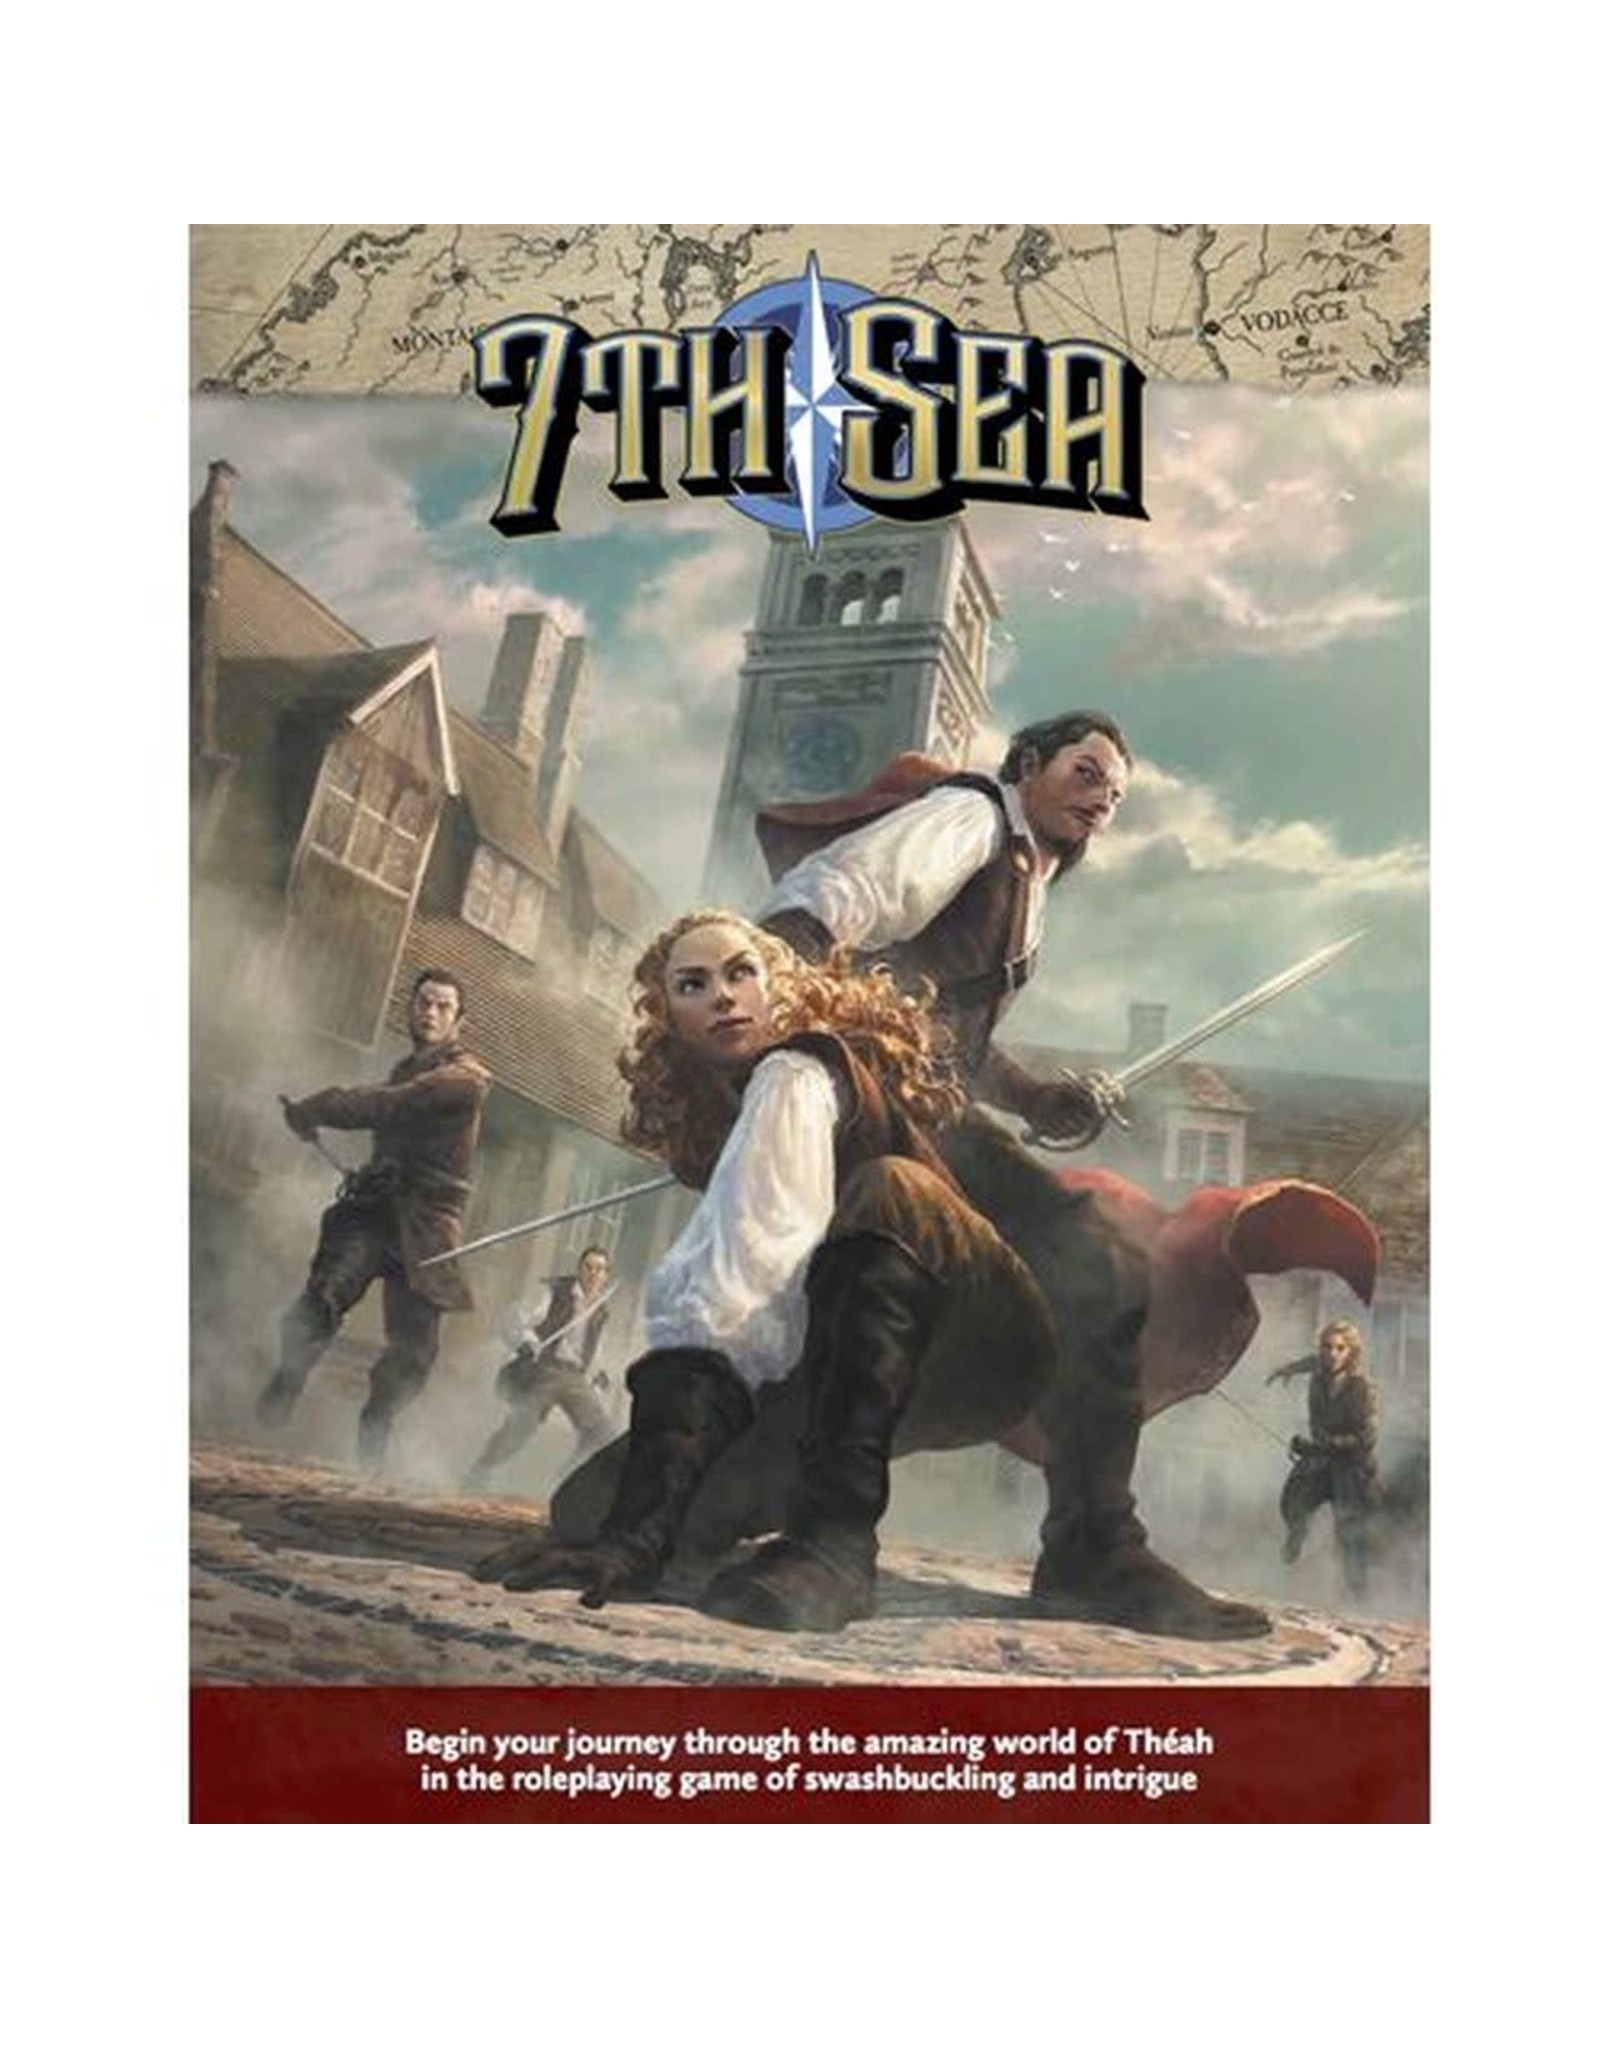 John Wick Presents 7TH SEA RPG 2ND EDITION: CORE RULEBOOK